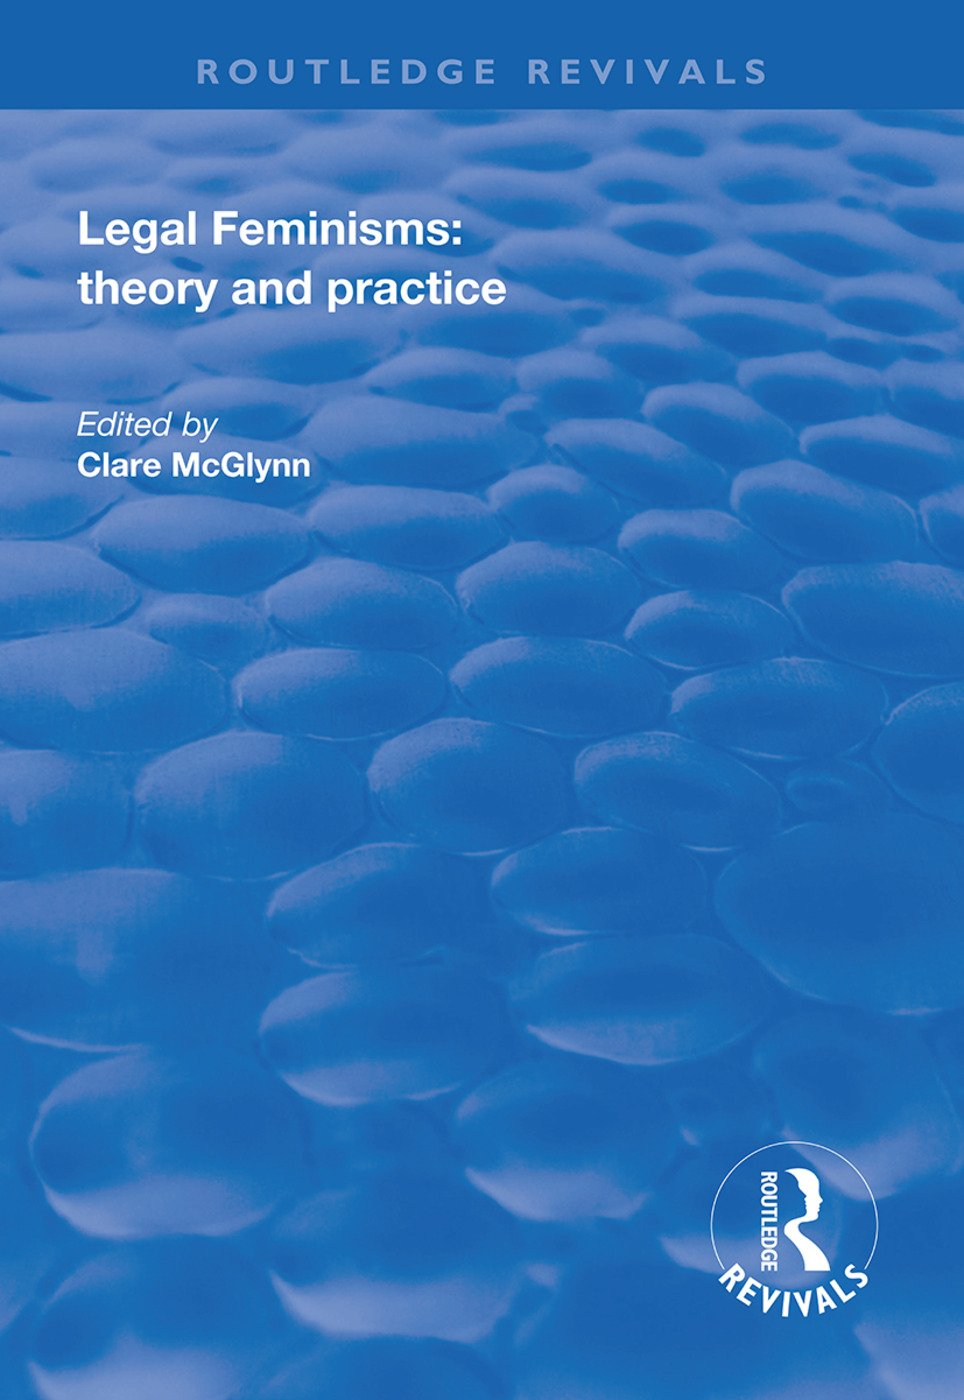 Legal Feminisms: theory and practice